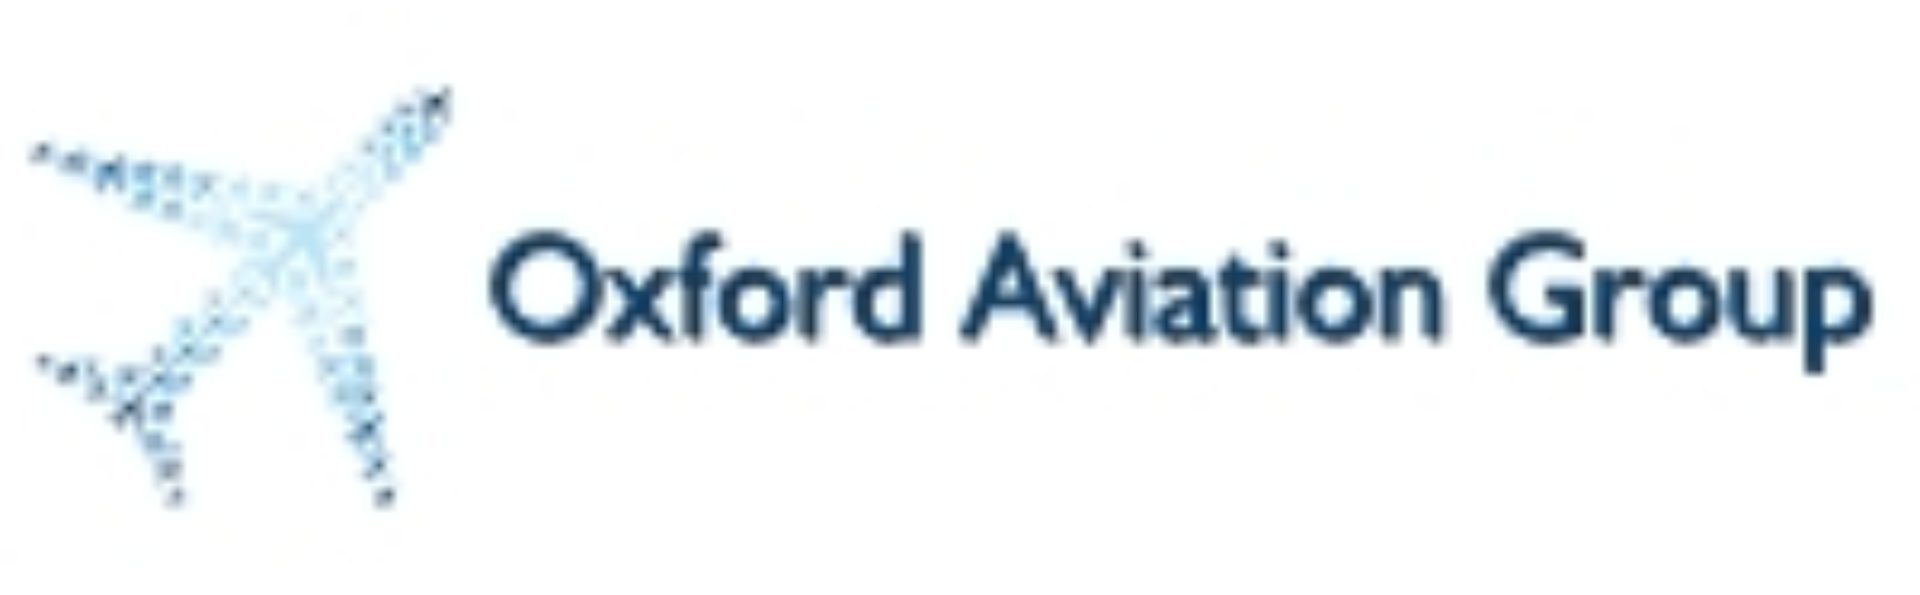 Oxford Aviation Group